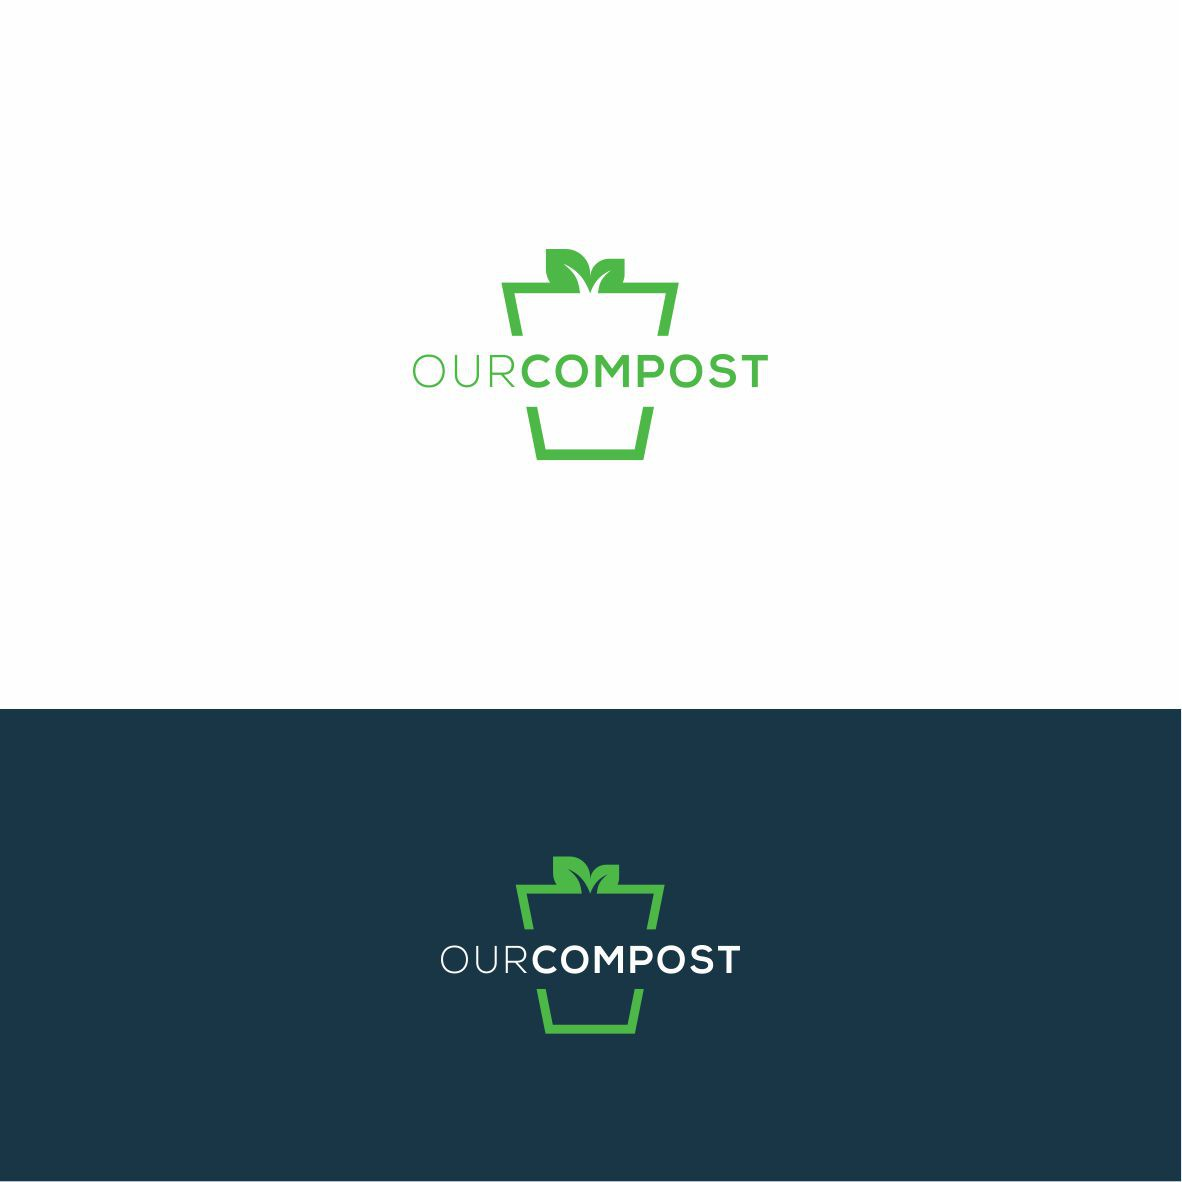 Save the planet - design a logo for eco-sustainability startup